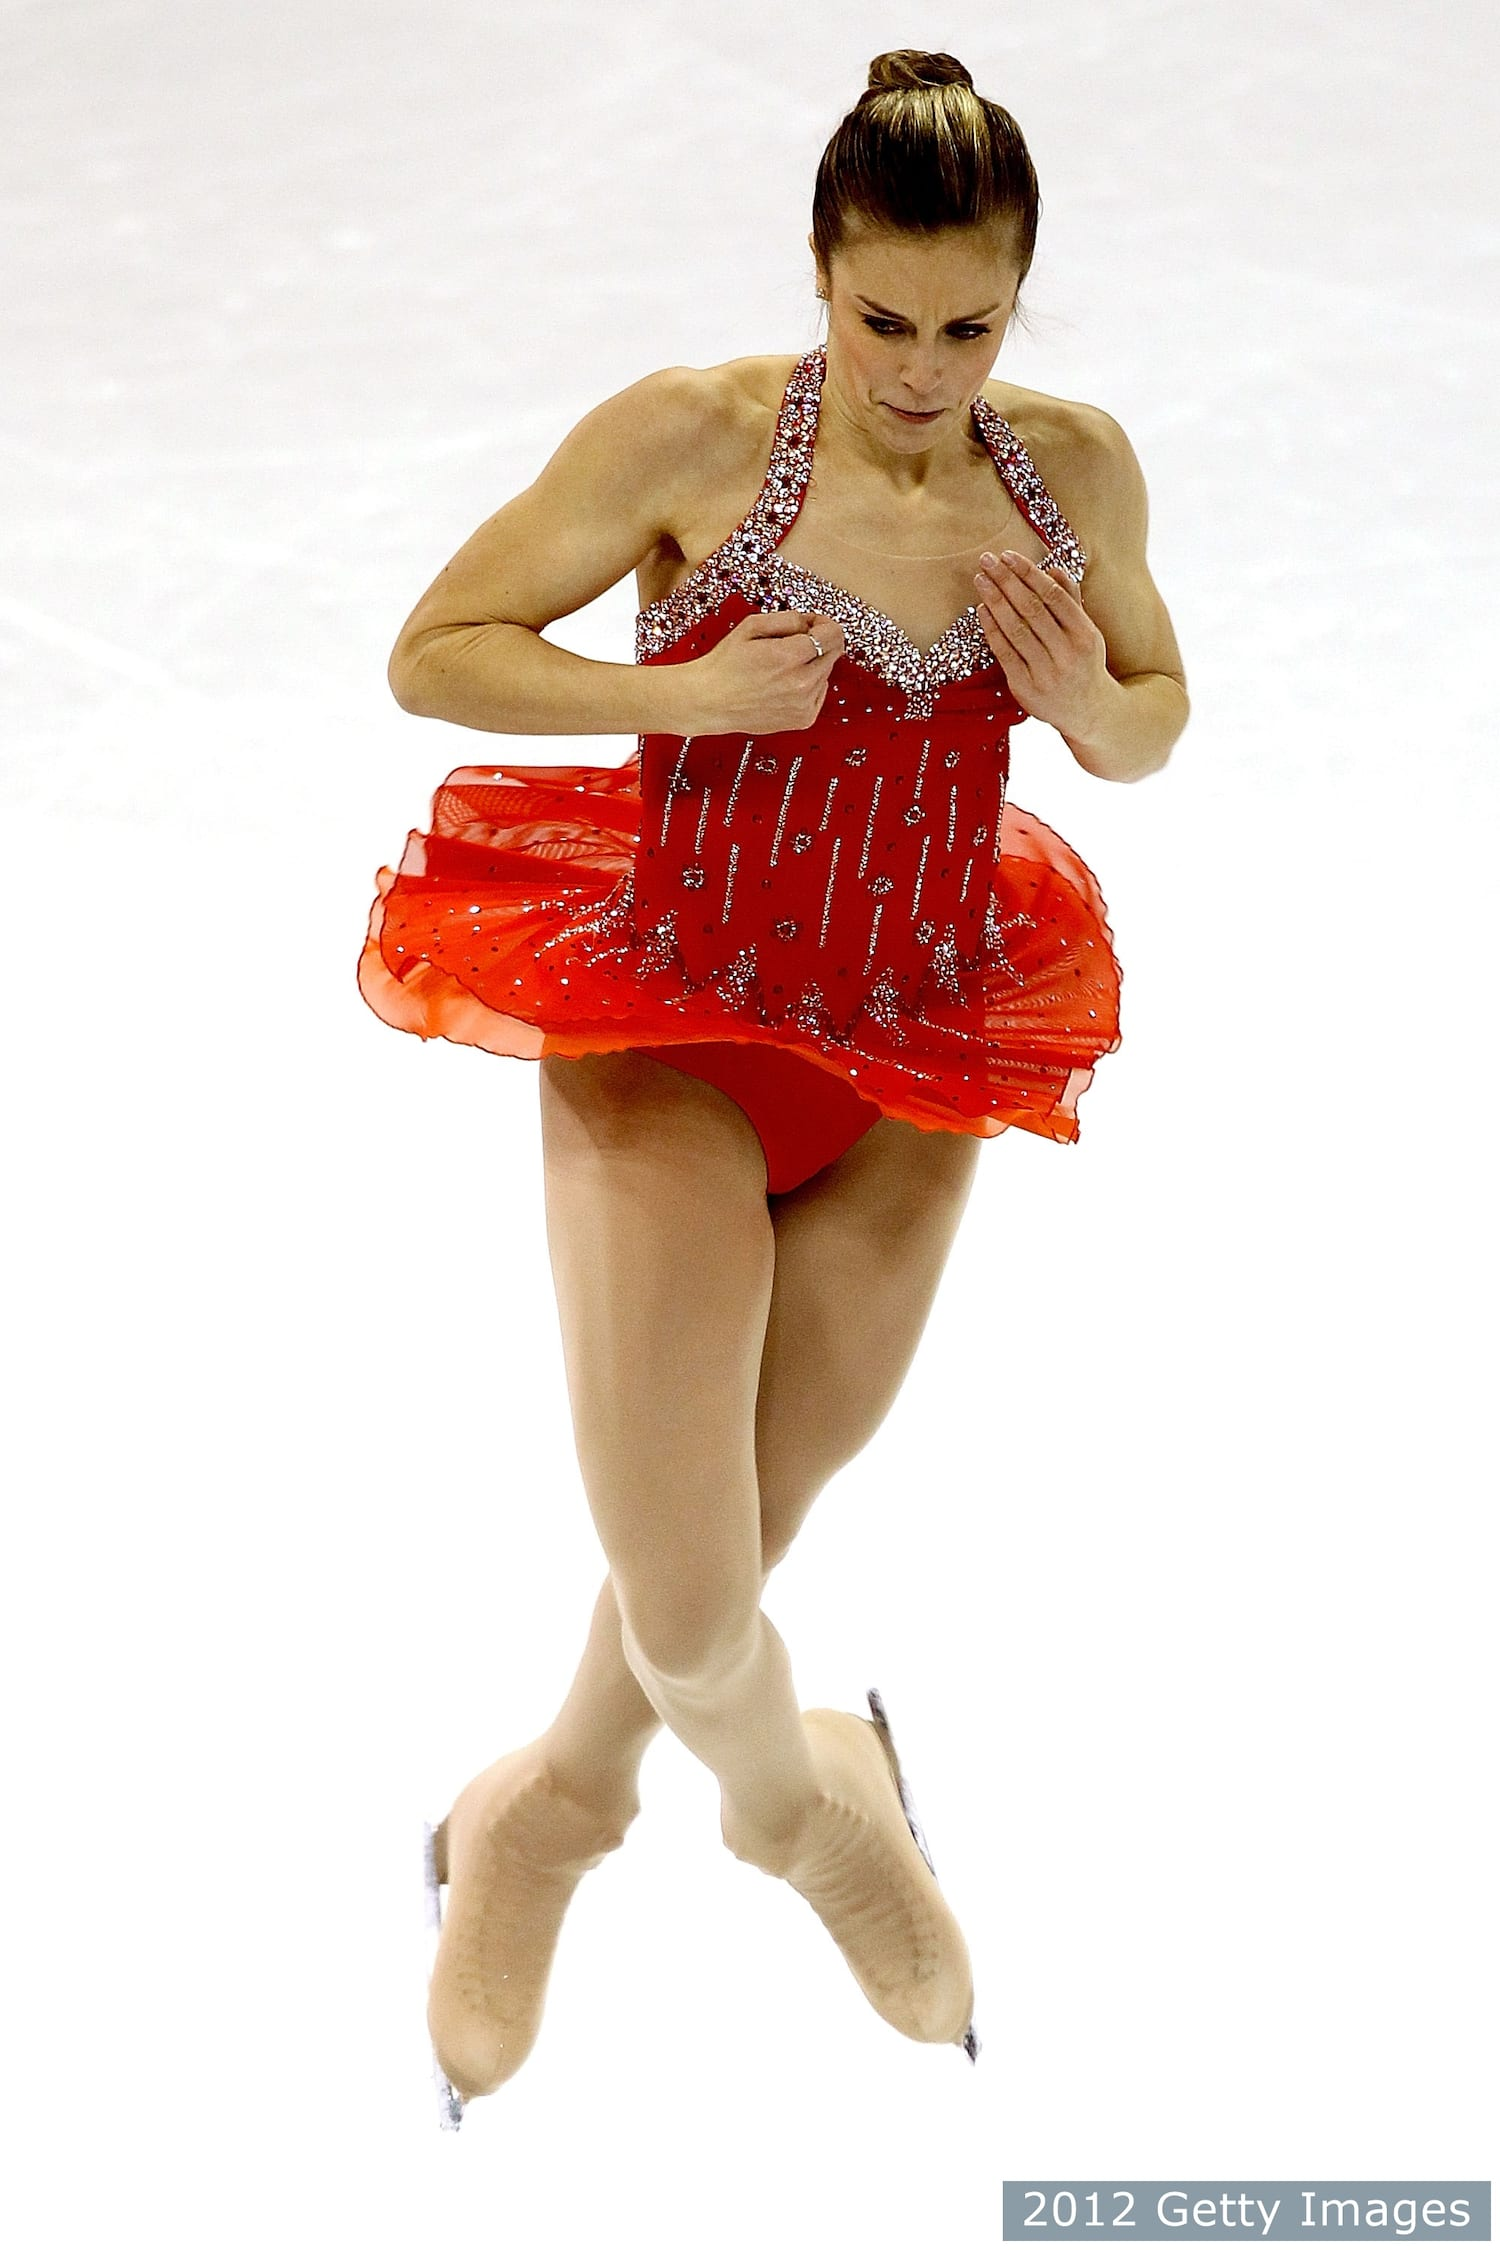 Ashley Wagner competes